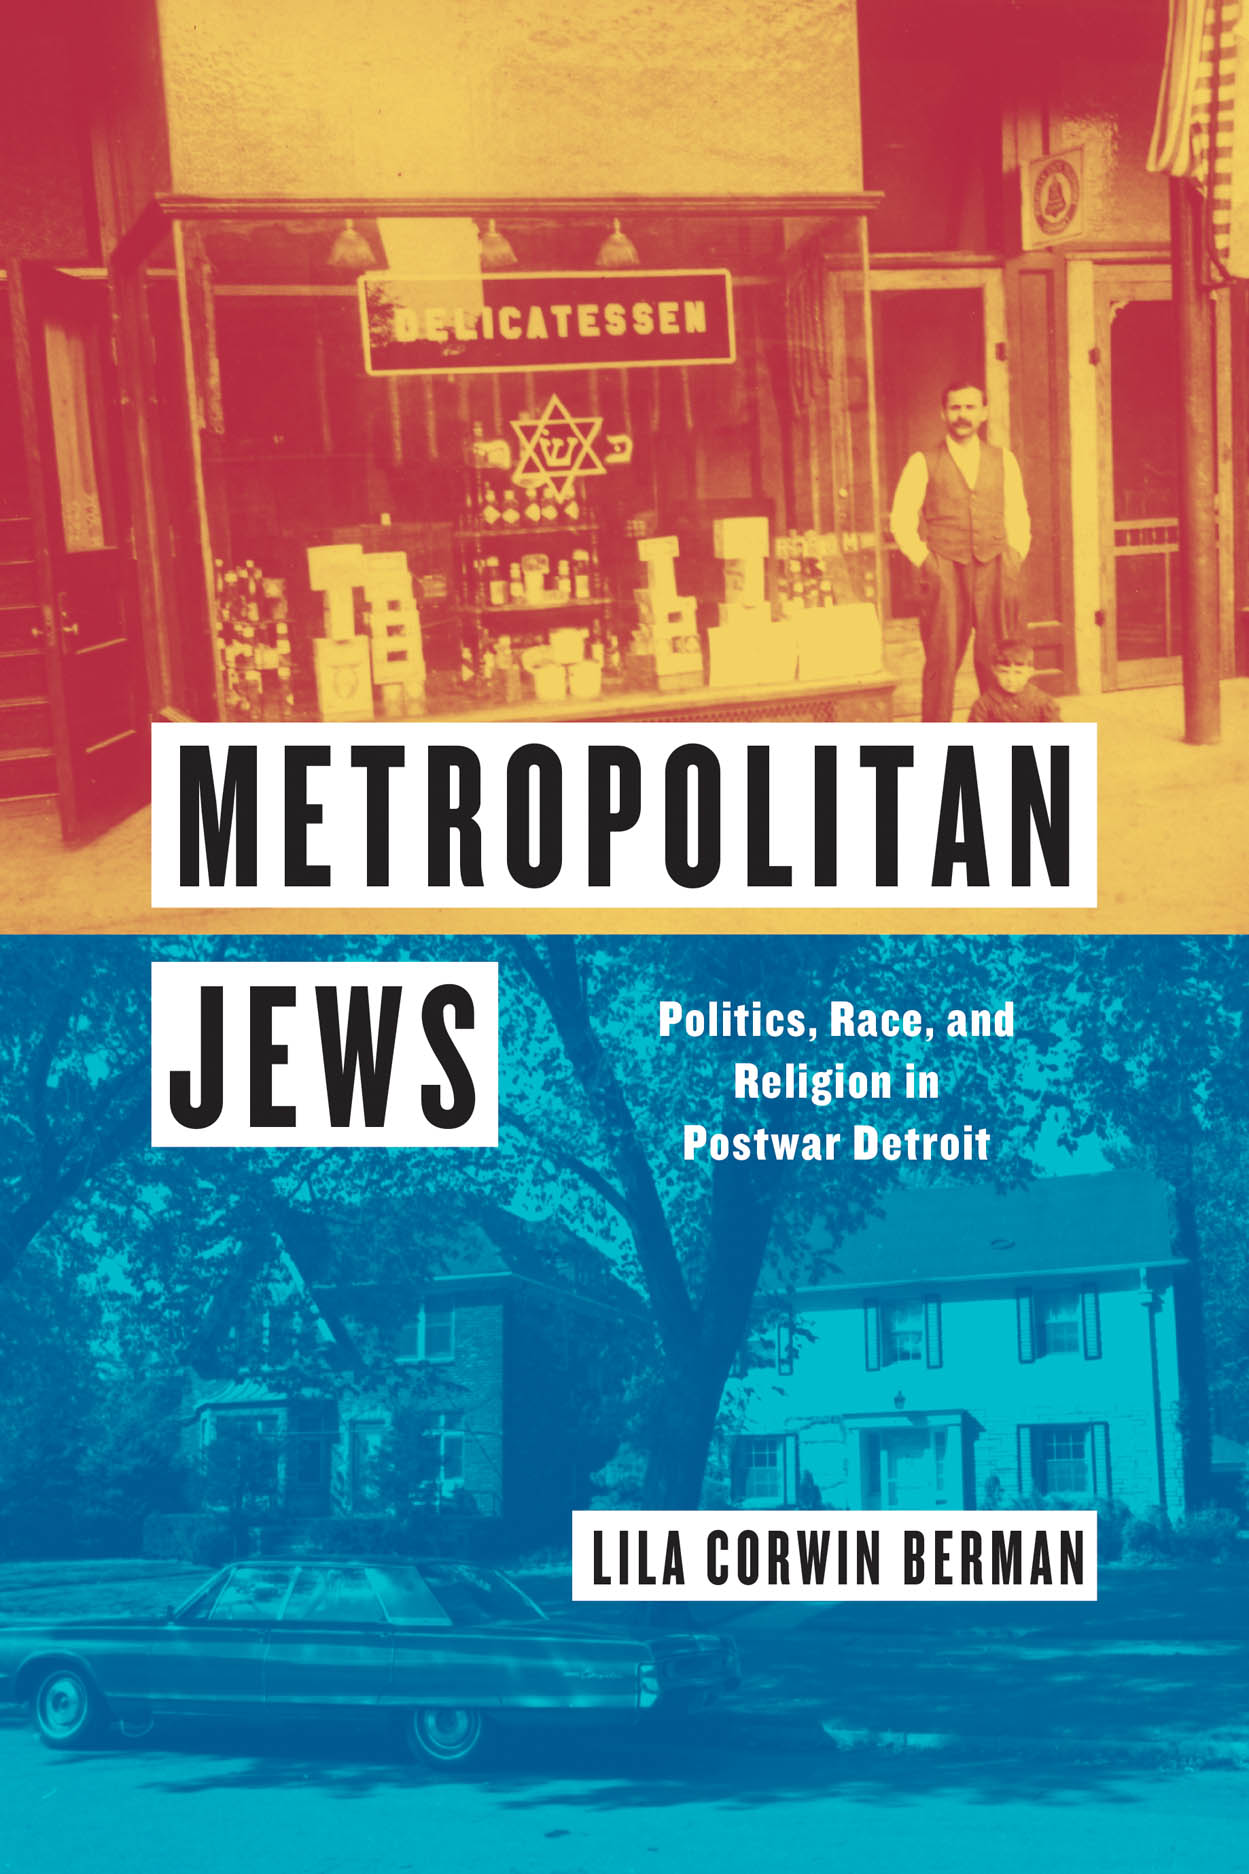 Metropolitan Jews: Politics, Race, and Religion in Postwar Detroit